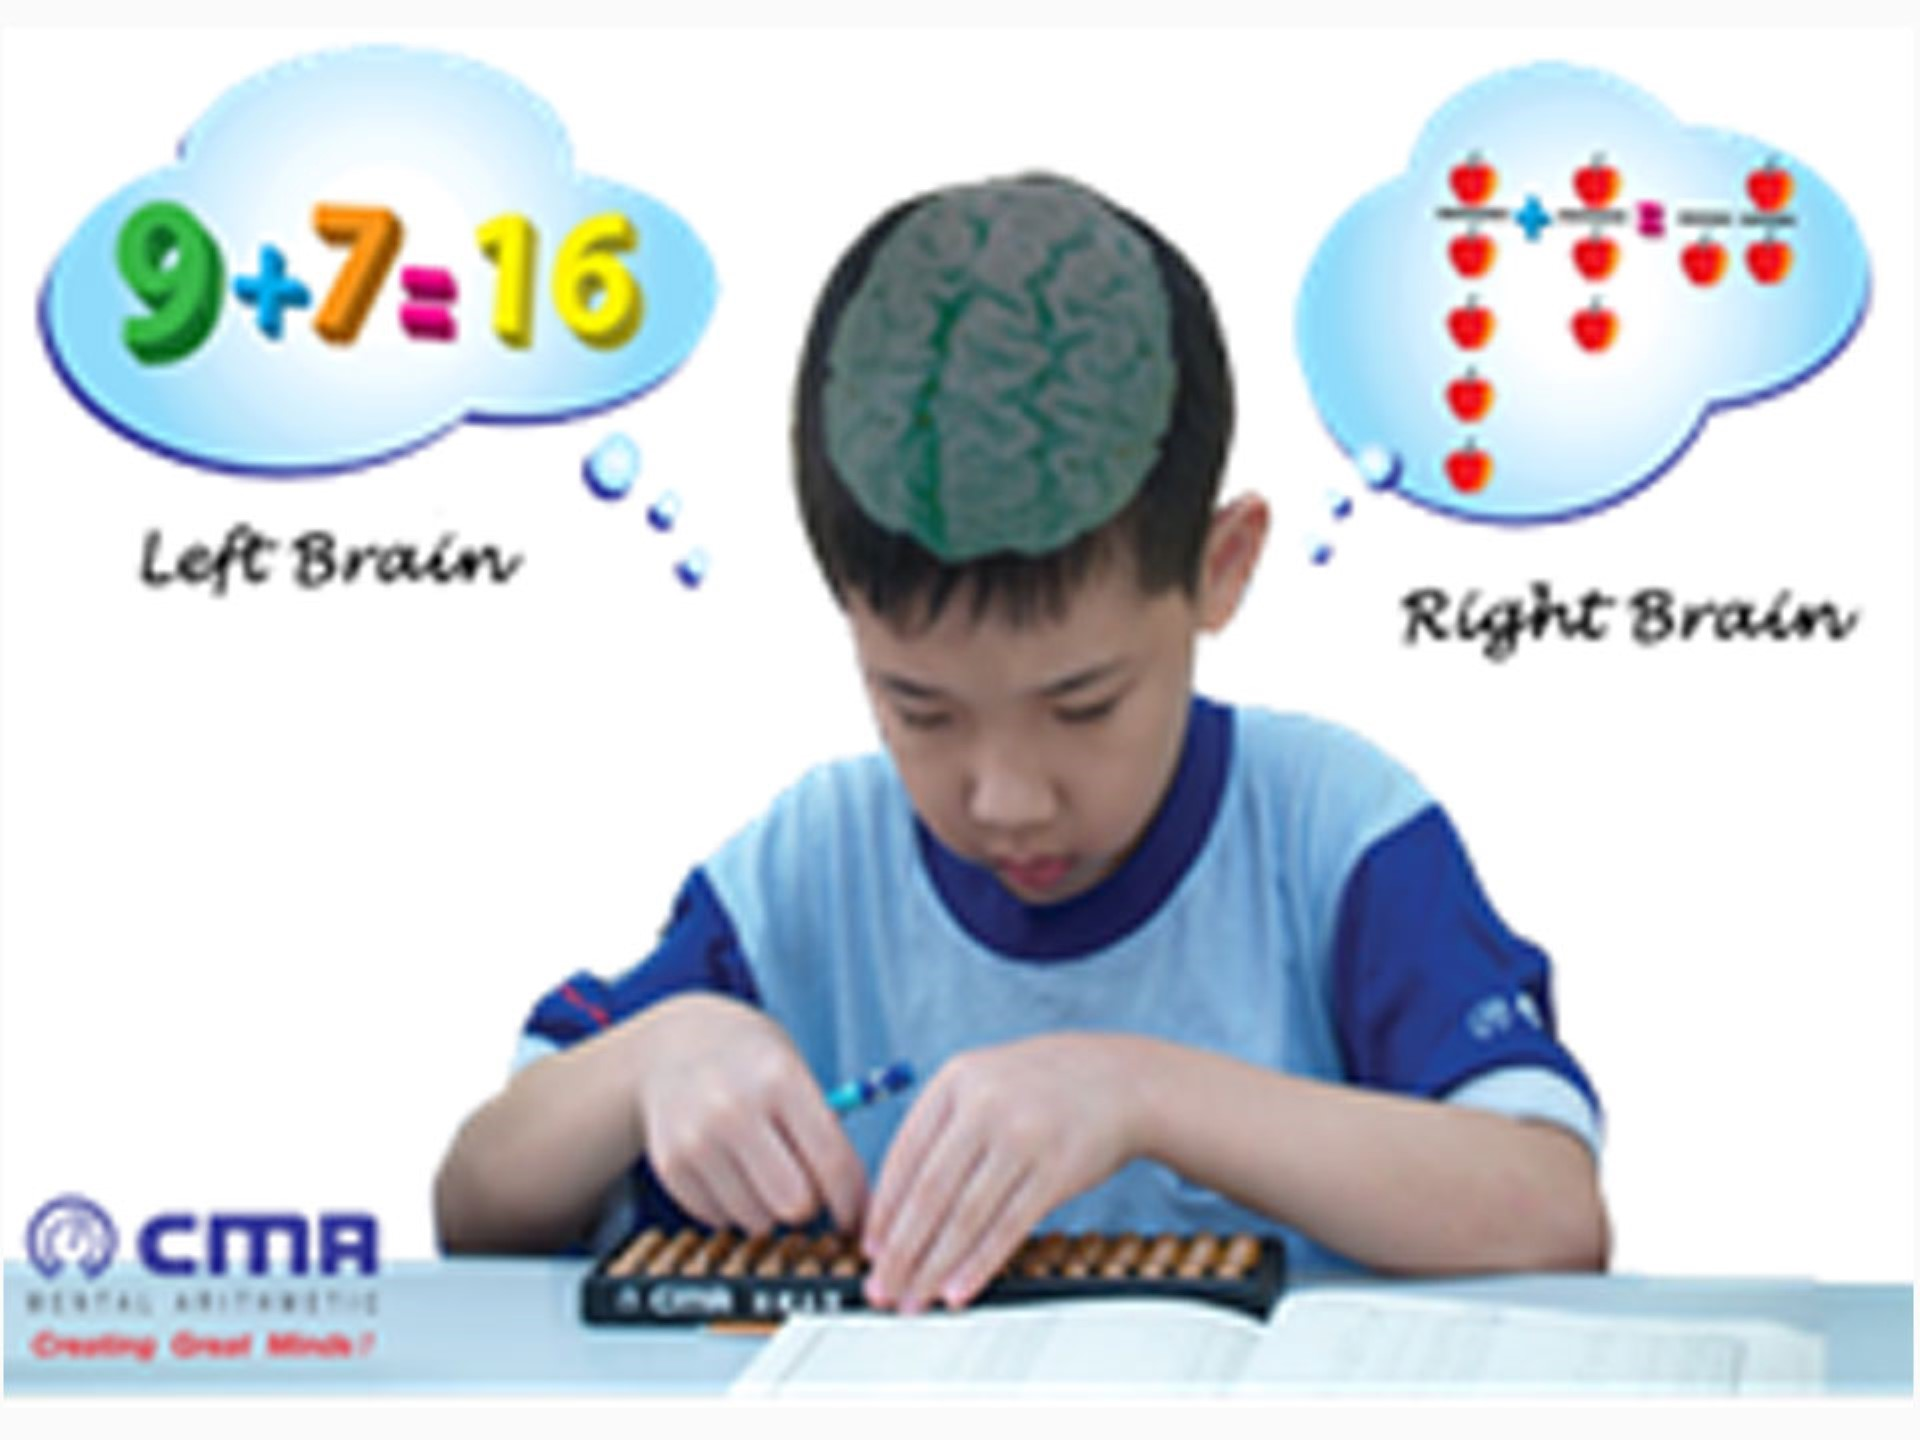 DIFFERENCE BETWEEN 1-HAND AND 2-HAND ABACUS METHOD